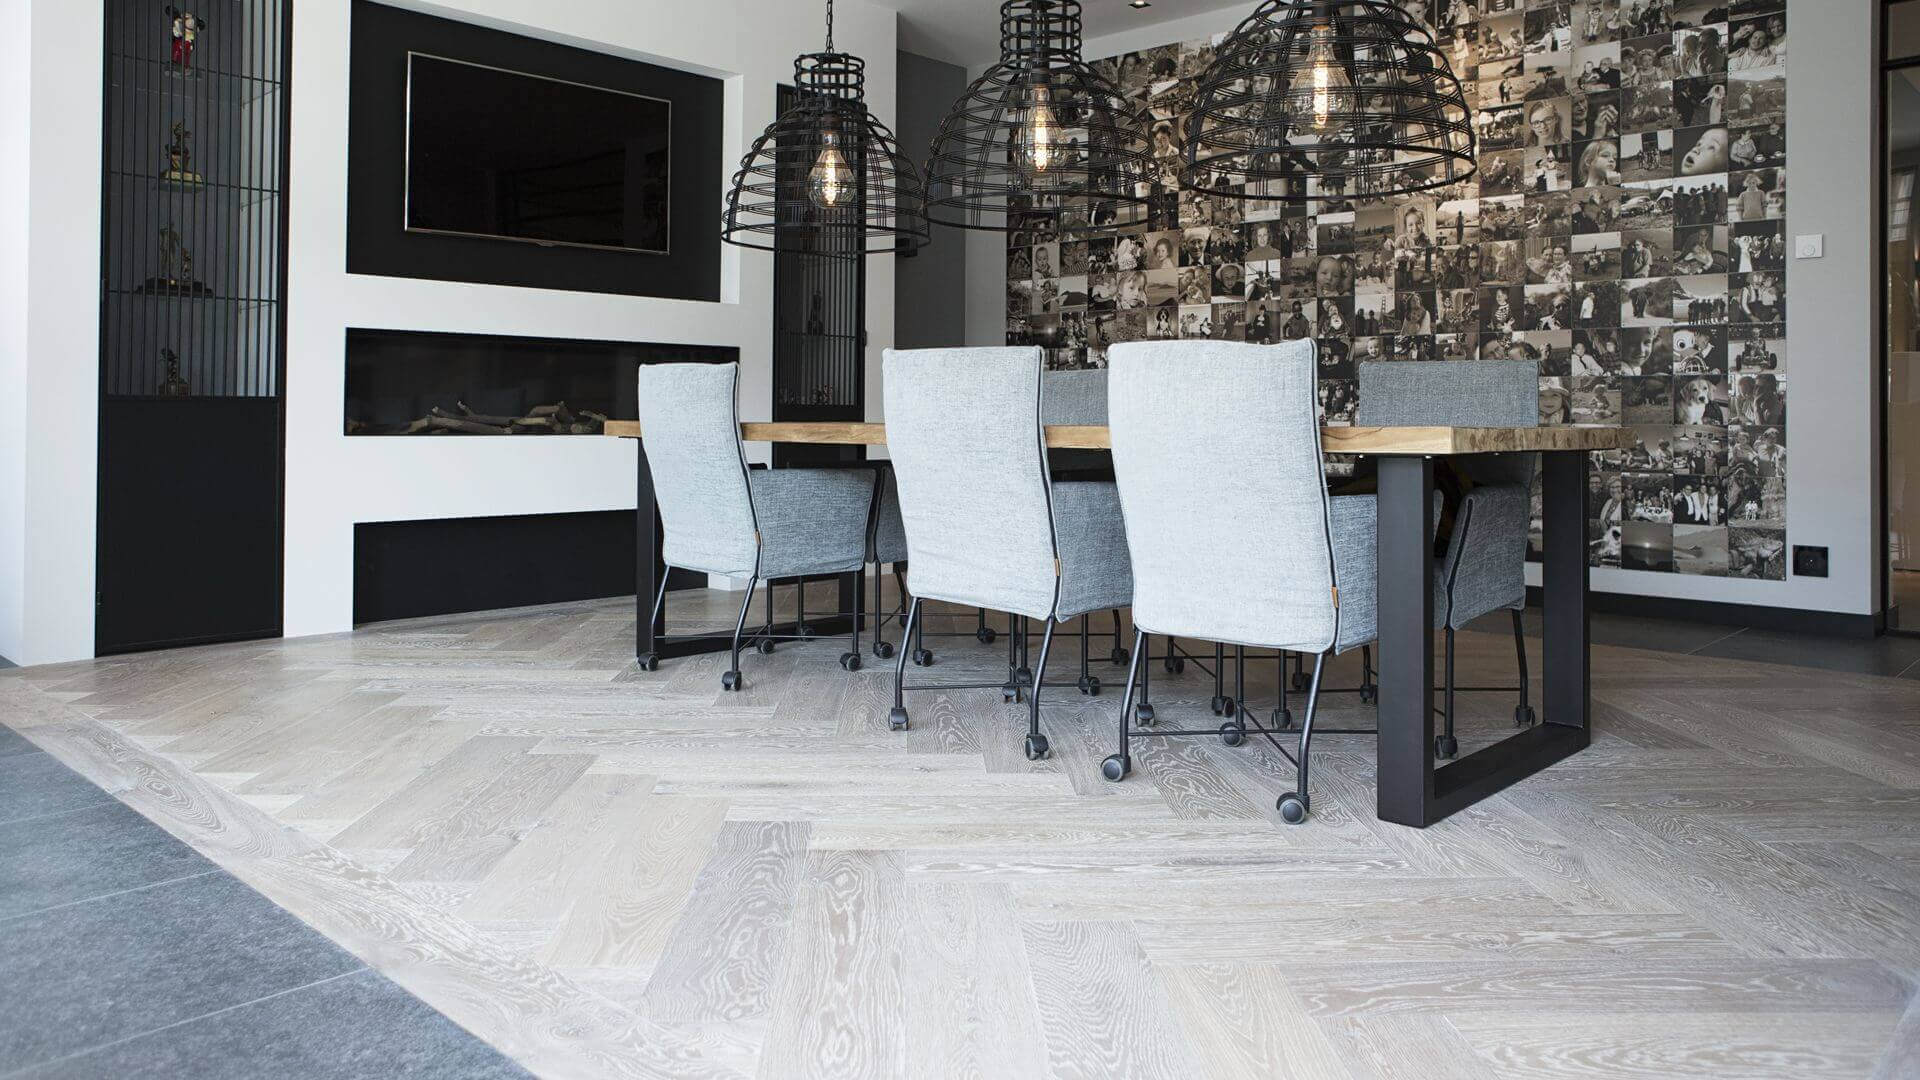 Underfloor heating is a pleasure and a warming experience, especially in combination with the naturel feeling of wood. Fortunately, wooden floors and underfloor heating have been a great combination for years!